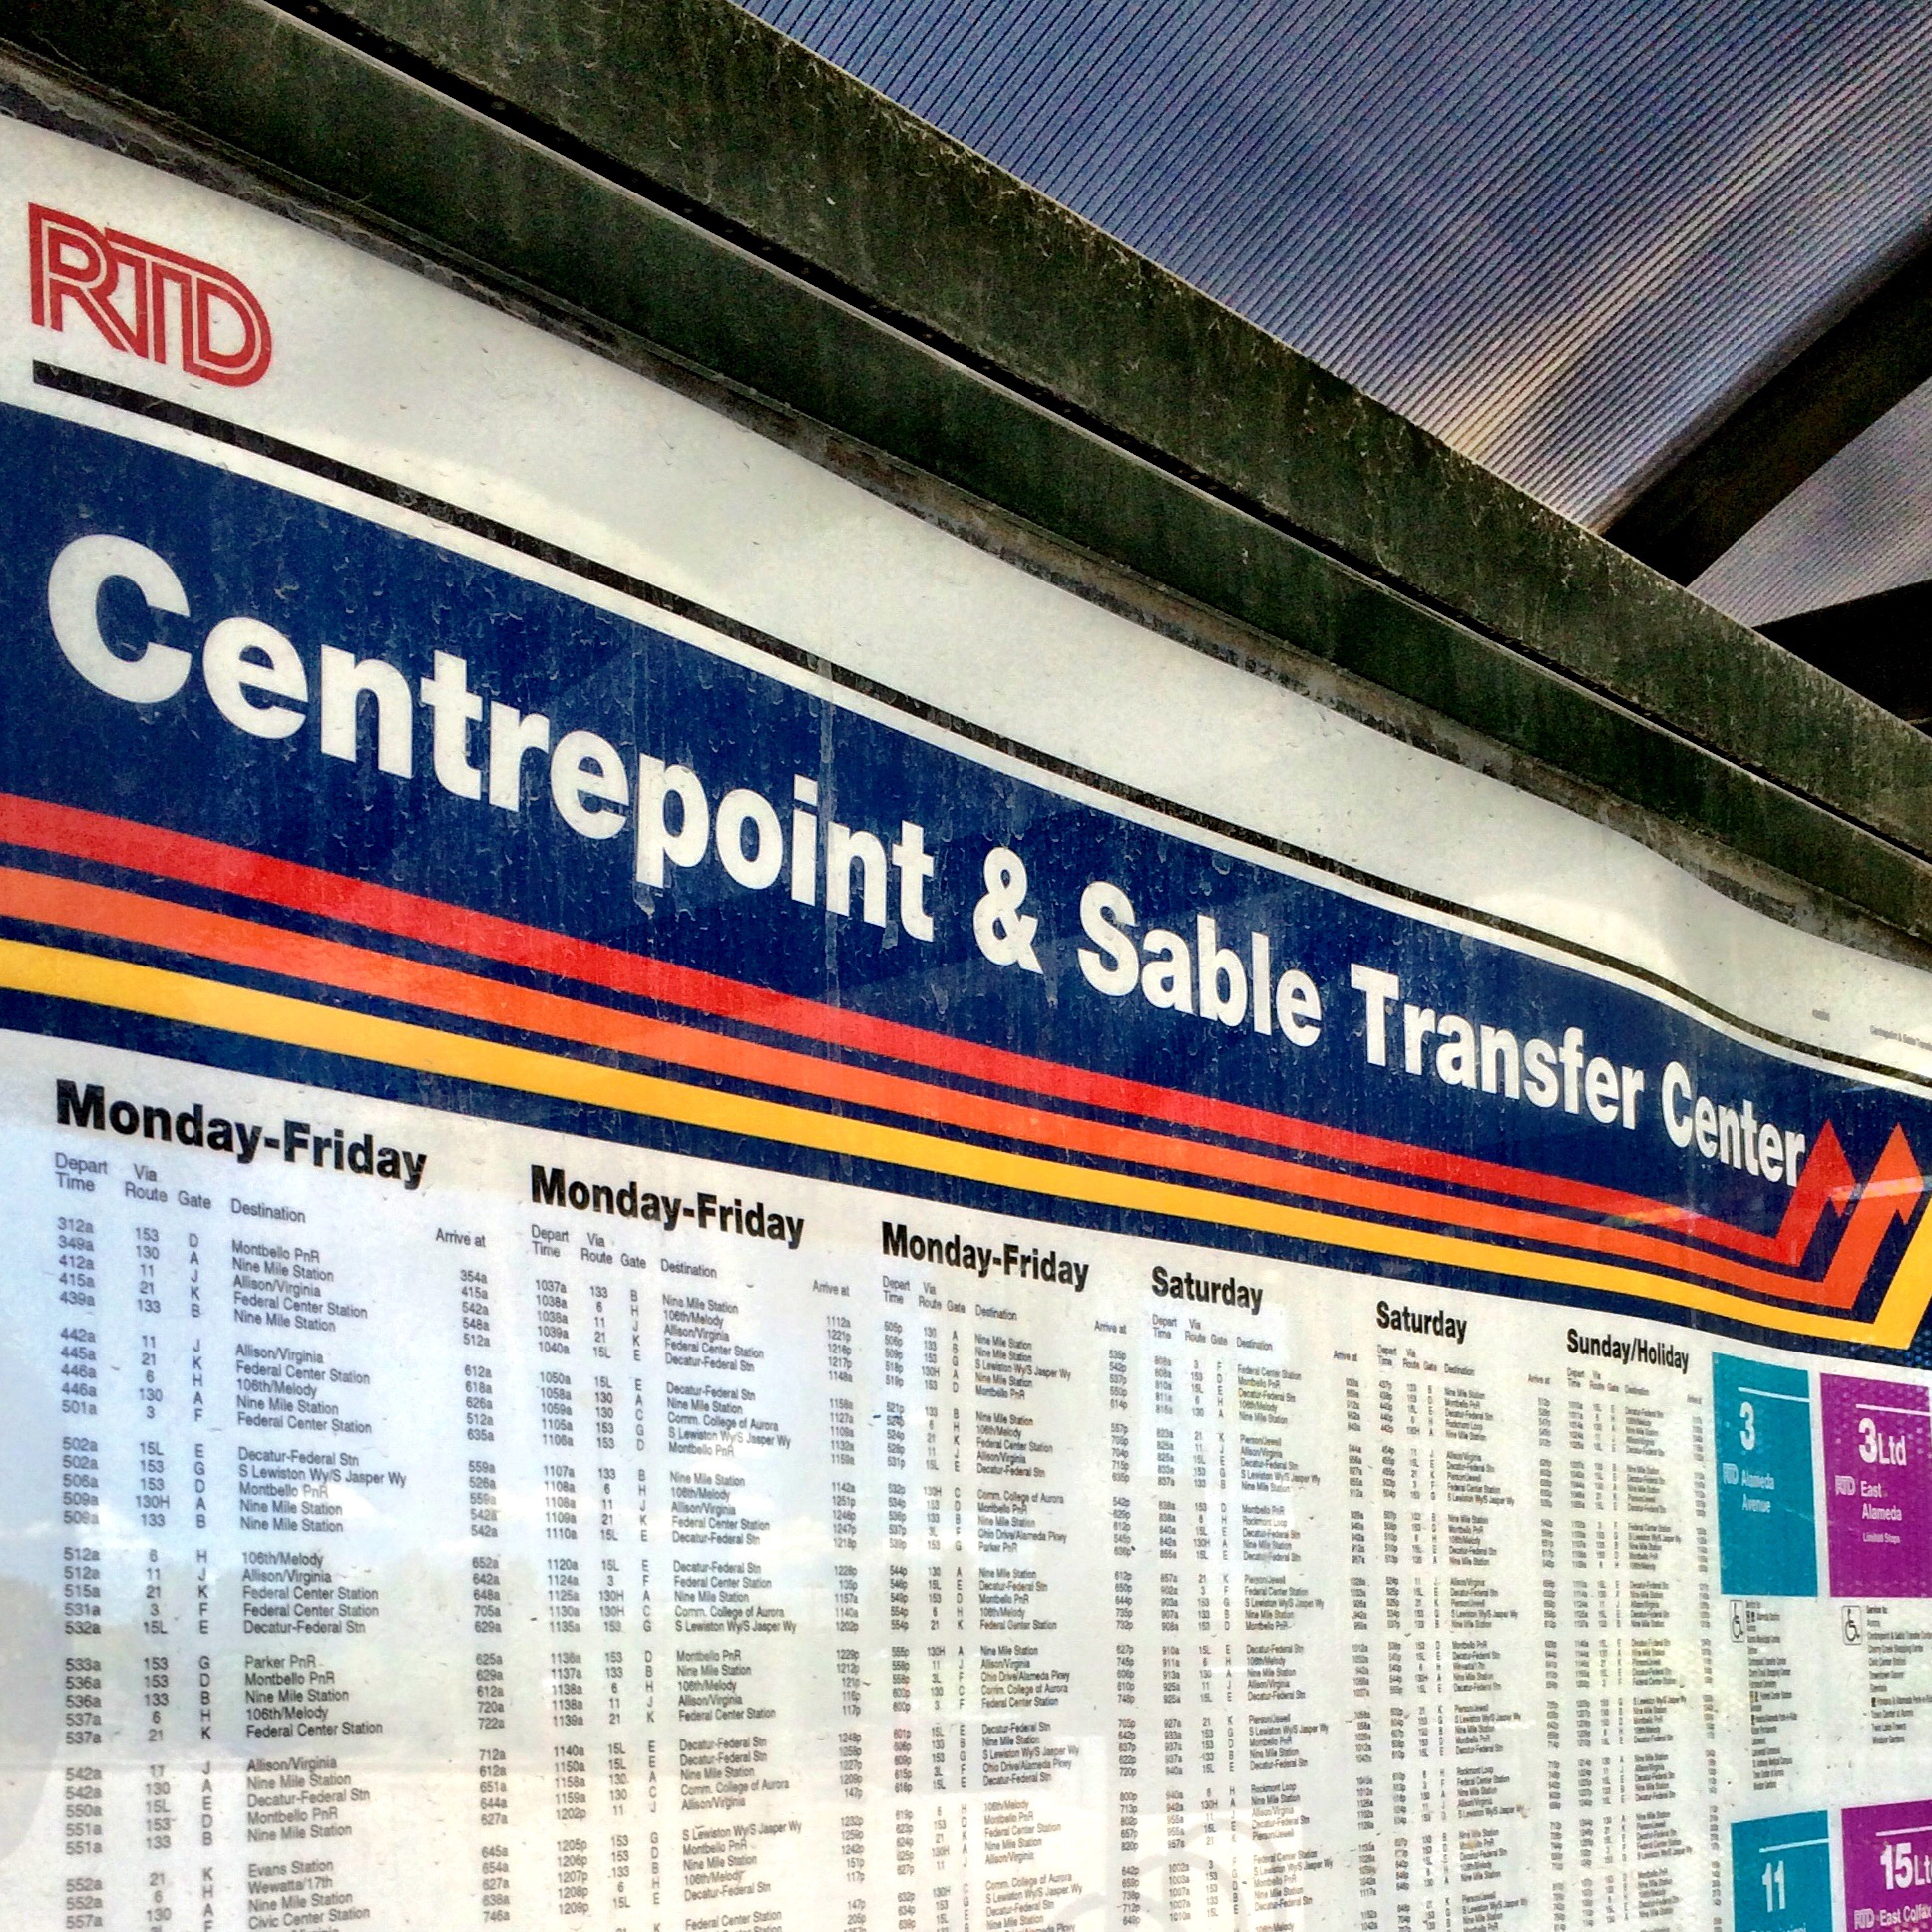 RTD bus schedule at Centrepoint & Sable